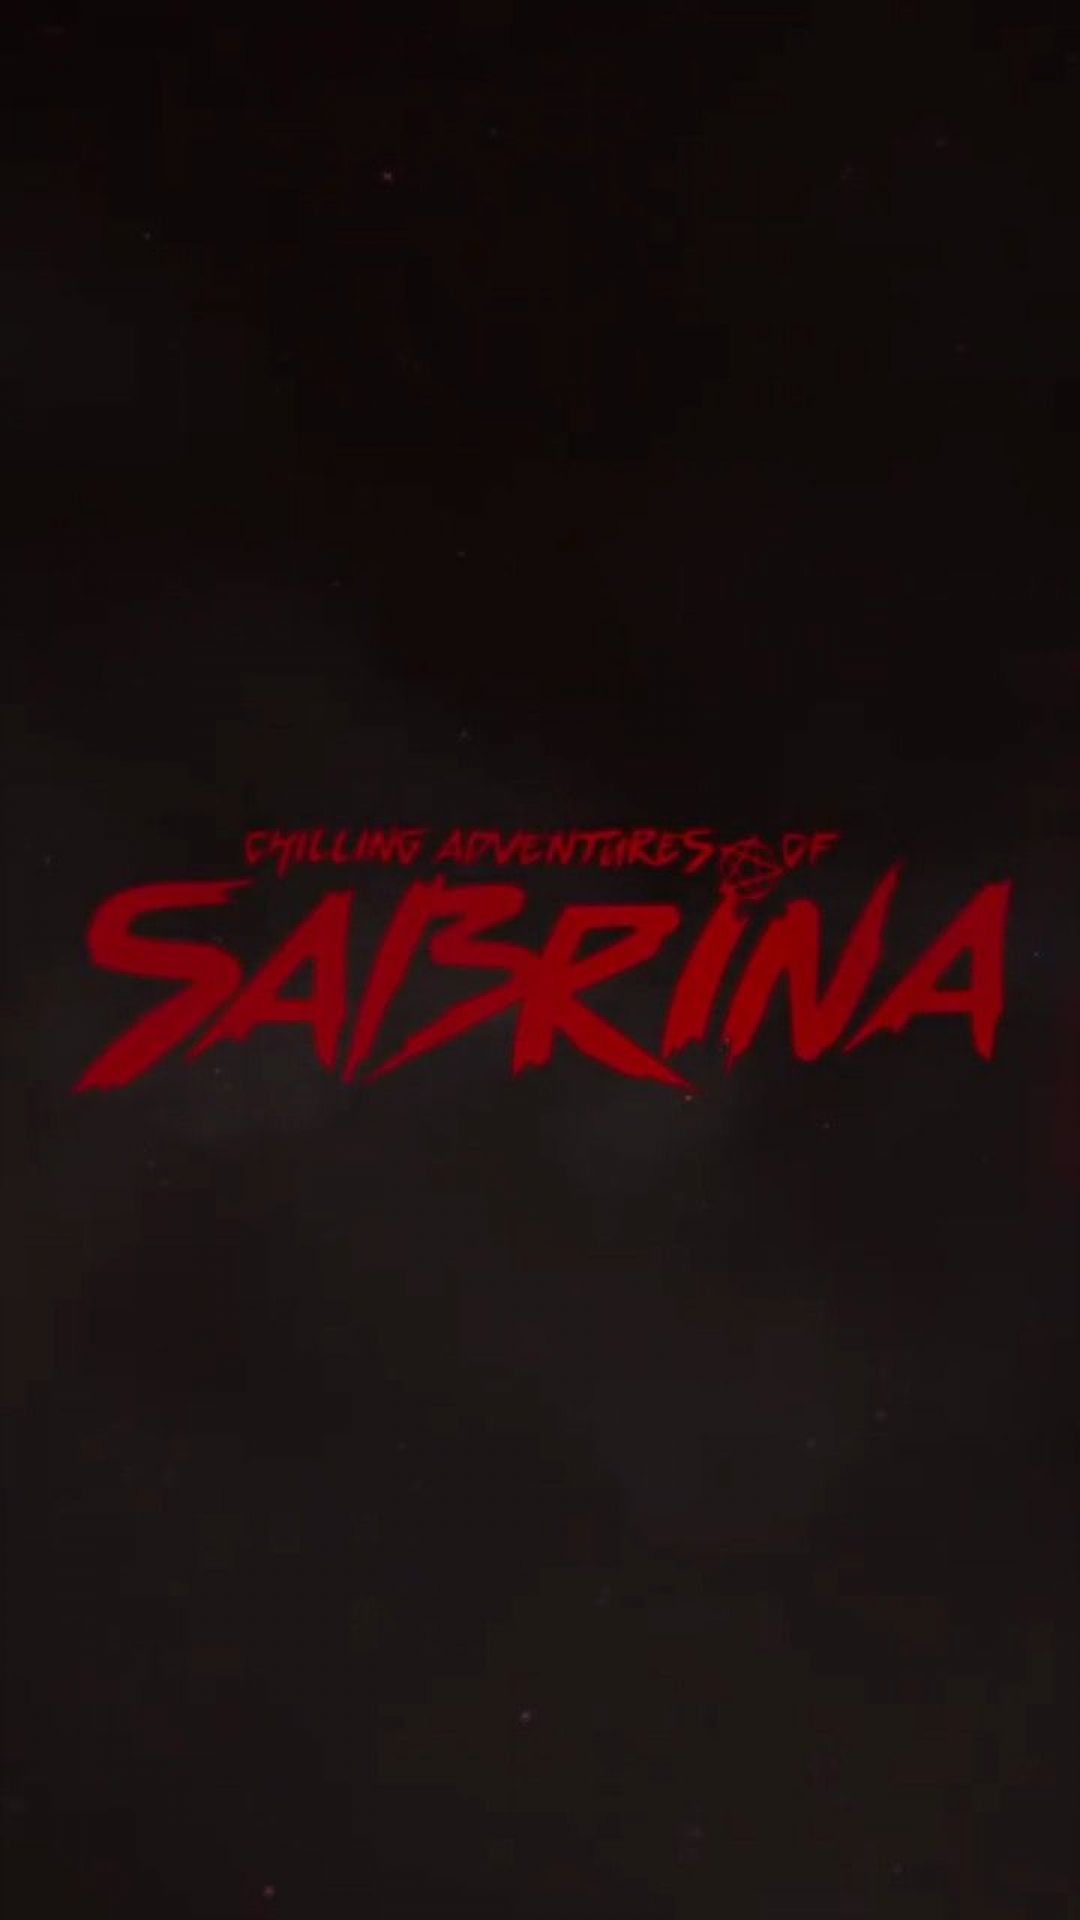 The Chilling Adventures Of Sabrina - Android, iPhone, Desktop HD Backgrounds / Wallpapers (1080p, 4k) (253484) - TV Shows